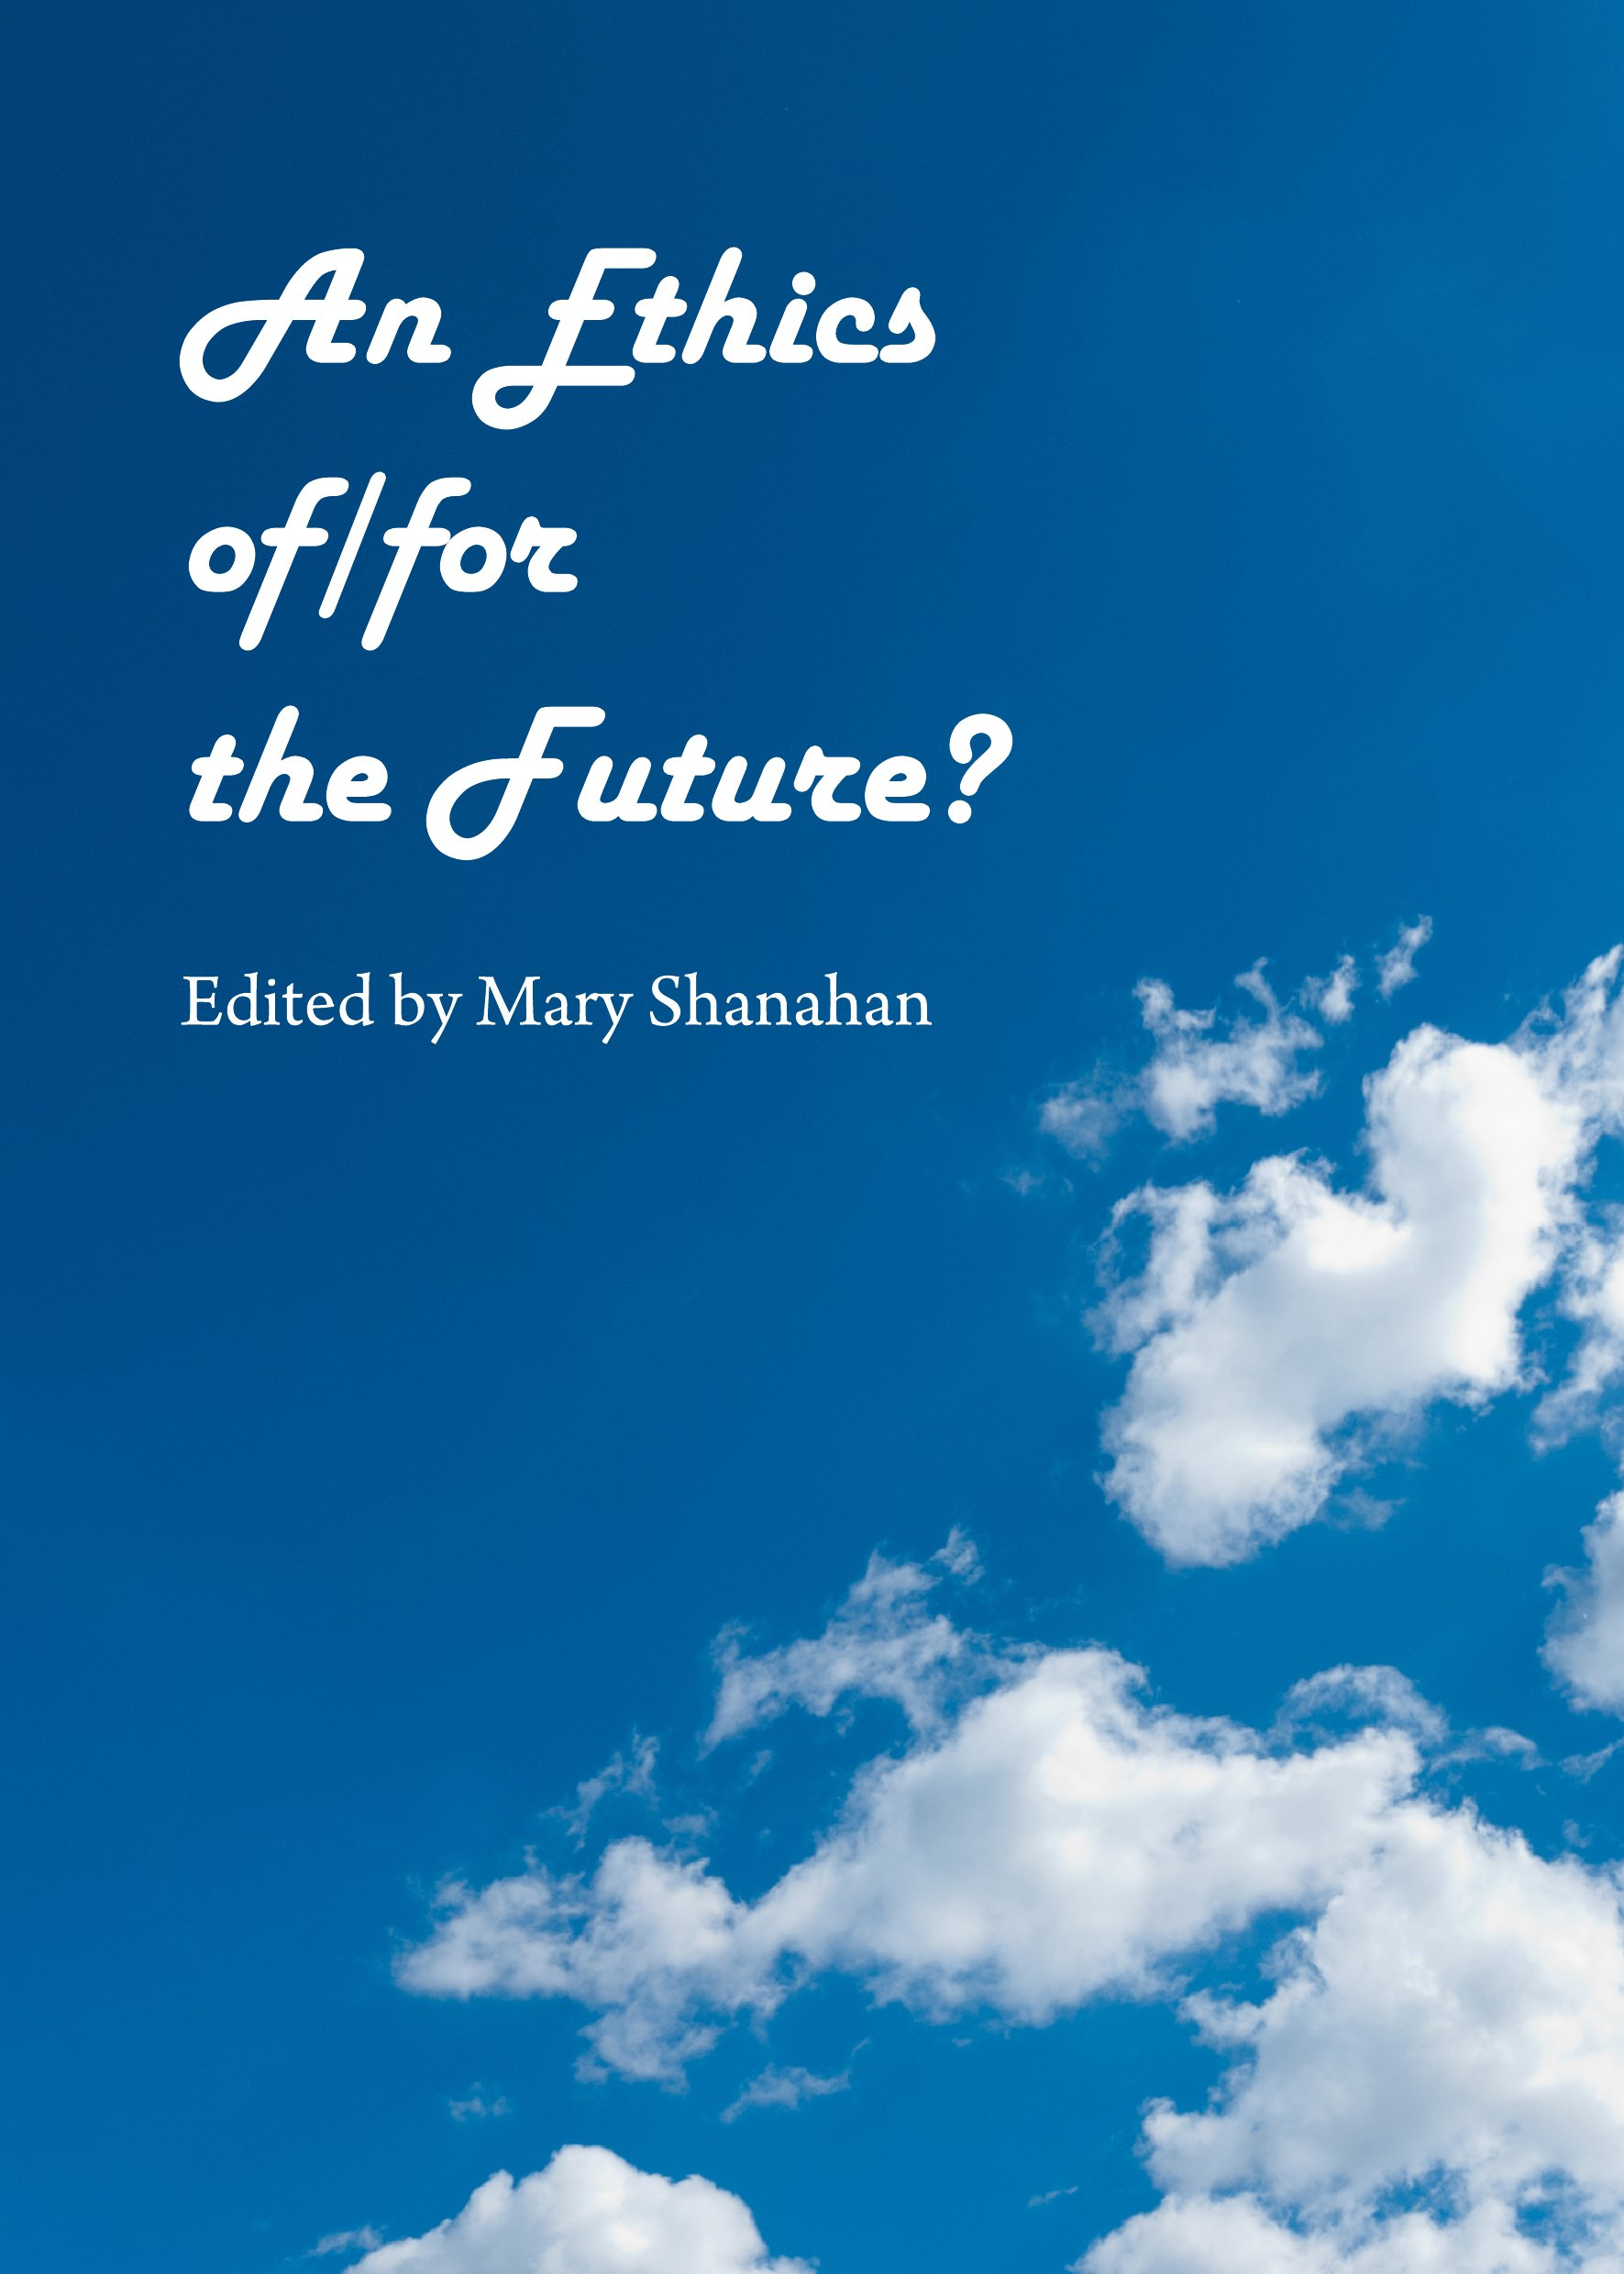 An Ethics of/for the Future?